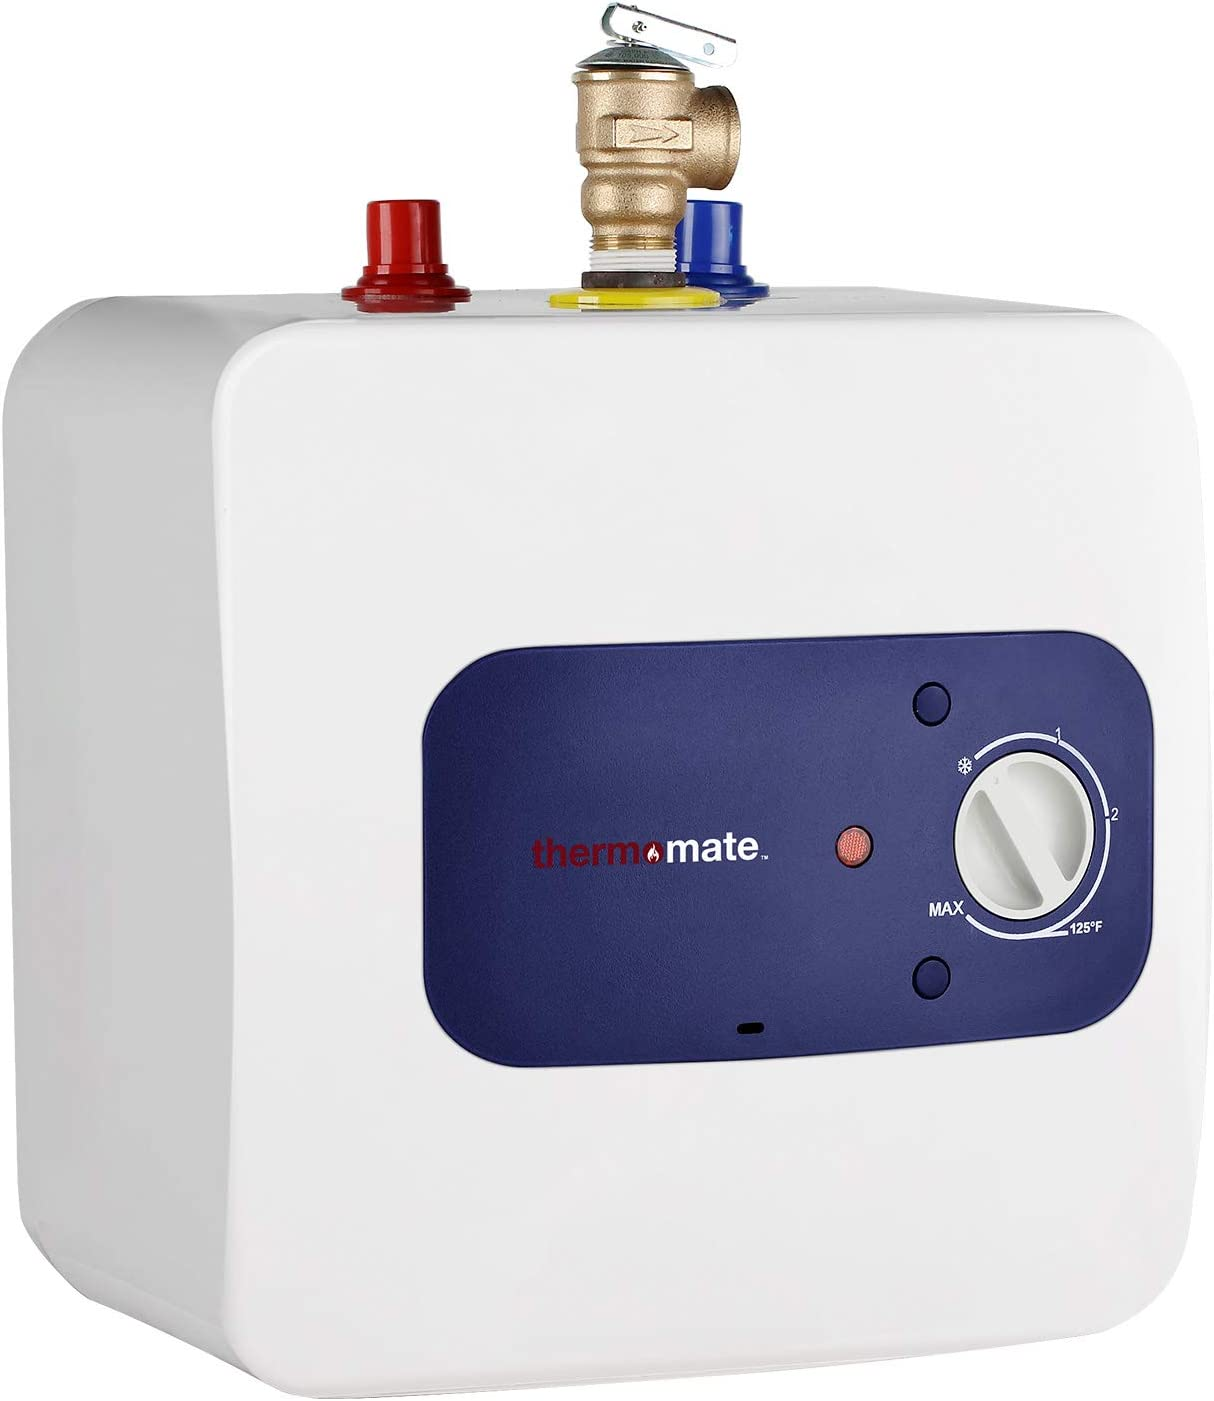 thermomate Mini Tank Electric Water Heater ES250 2.5 Gallons Point of Use No Wait for Hot Water Under Kitchen Sink 120V 1440W, Wall or Floor Mounted